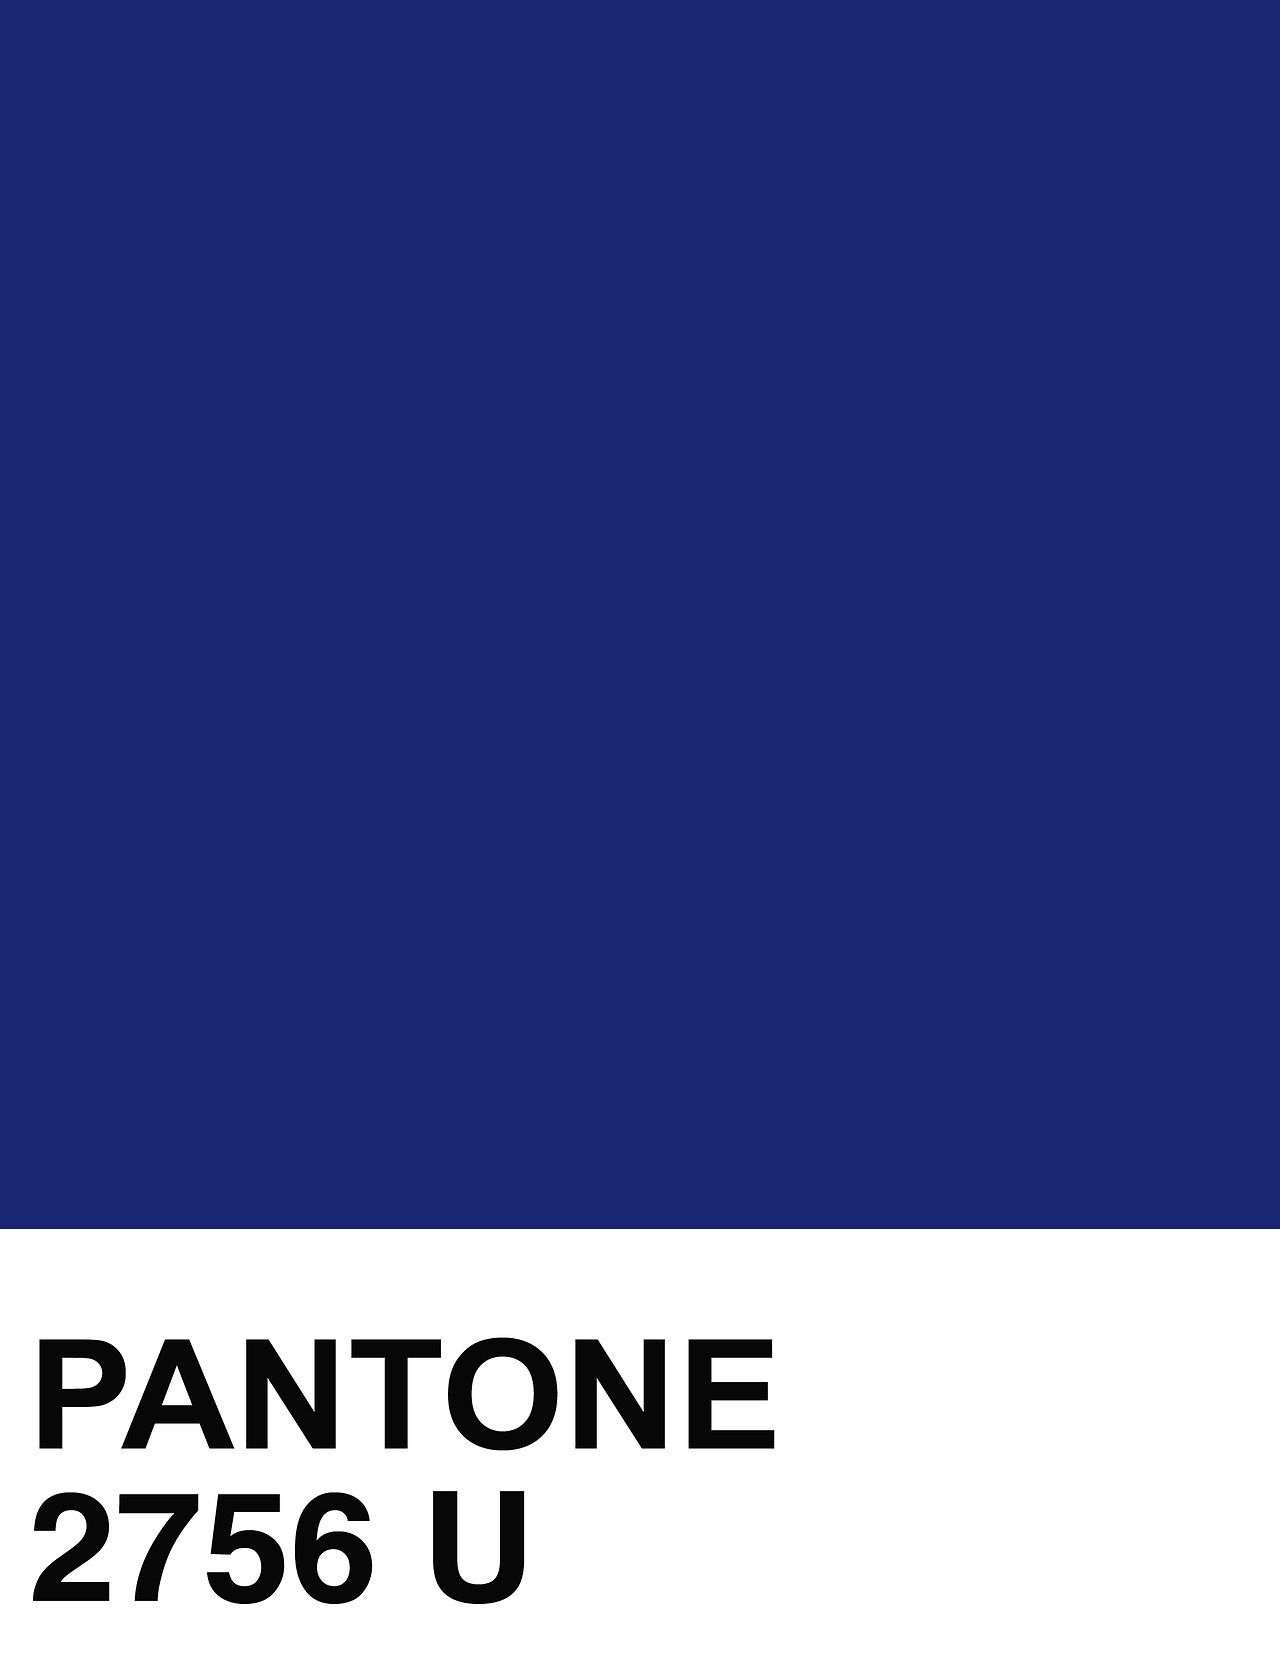 Amado pinterest: morgangretaaa | - ̗̀ spencer ̖́- | Pinterest | Pantone  SD44